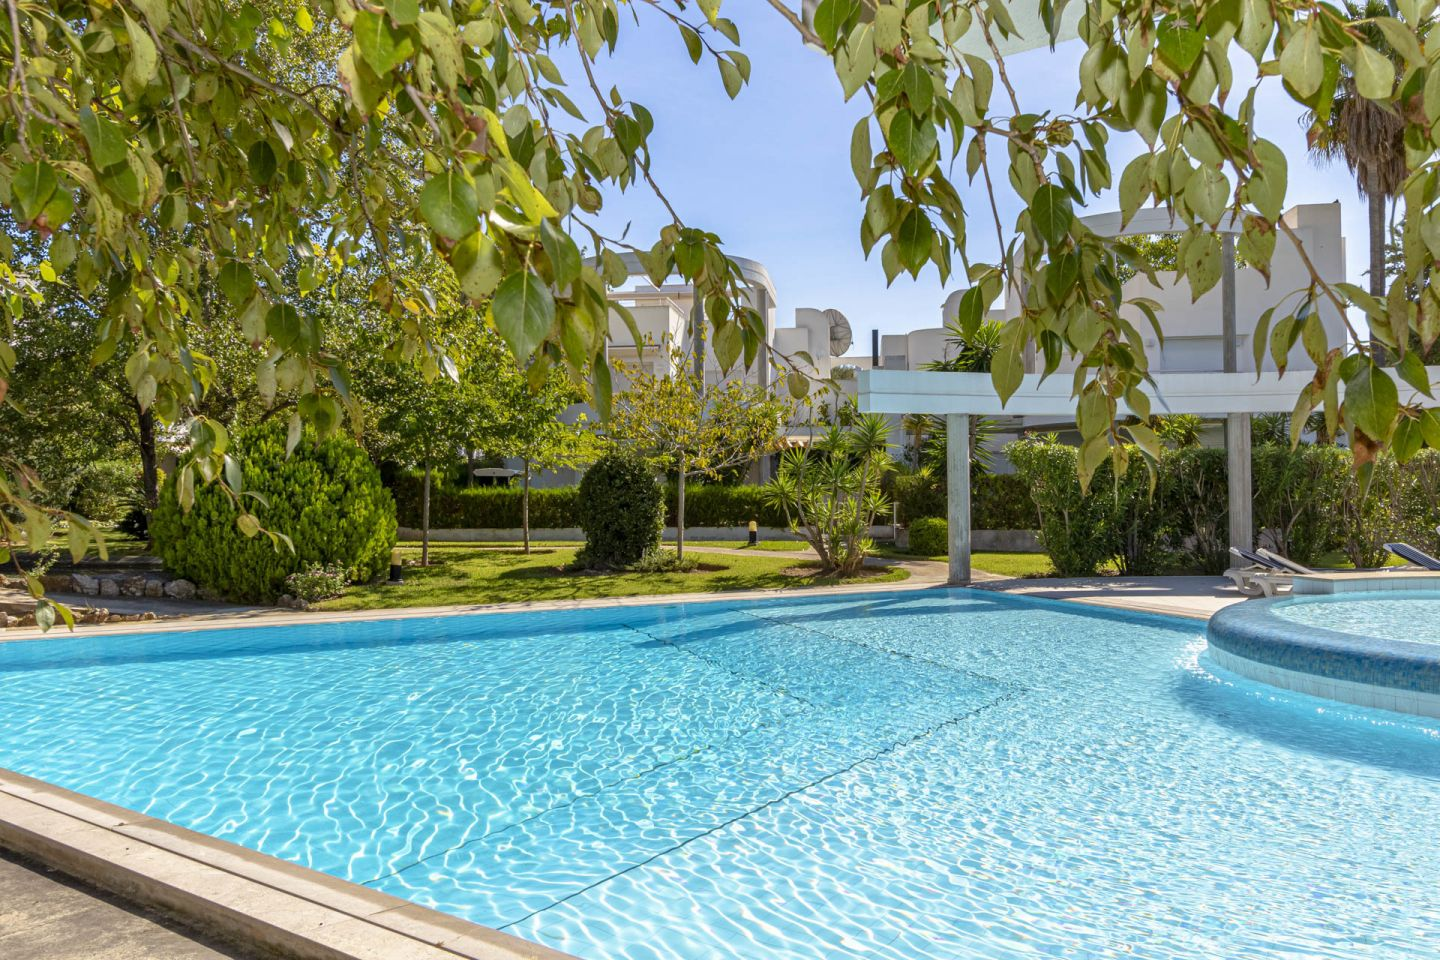 5 Bed Townhouse for sale in Puerto Pollensa 1